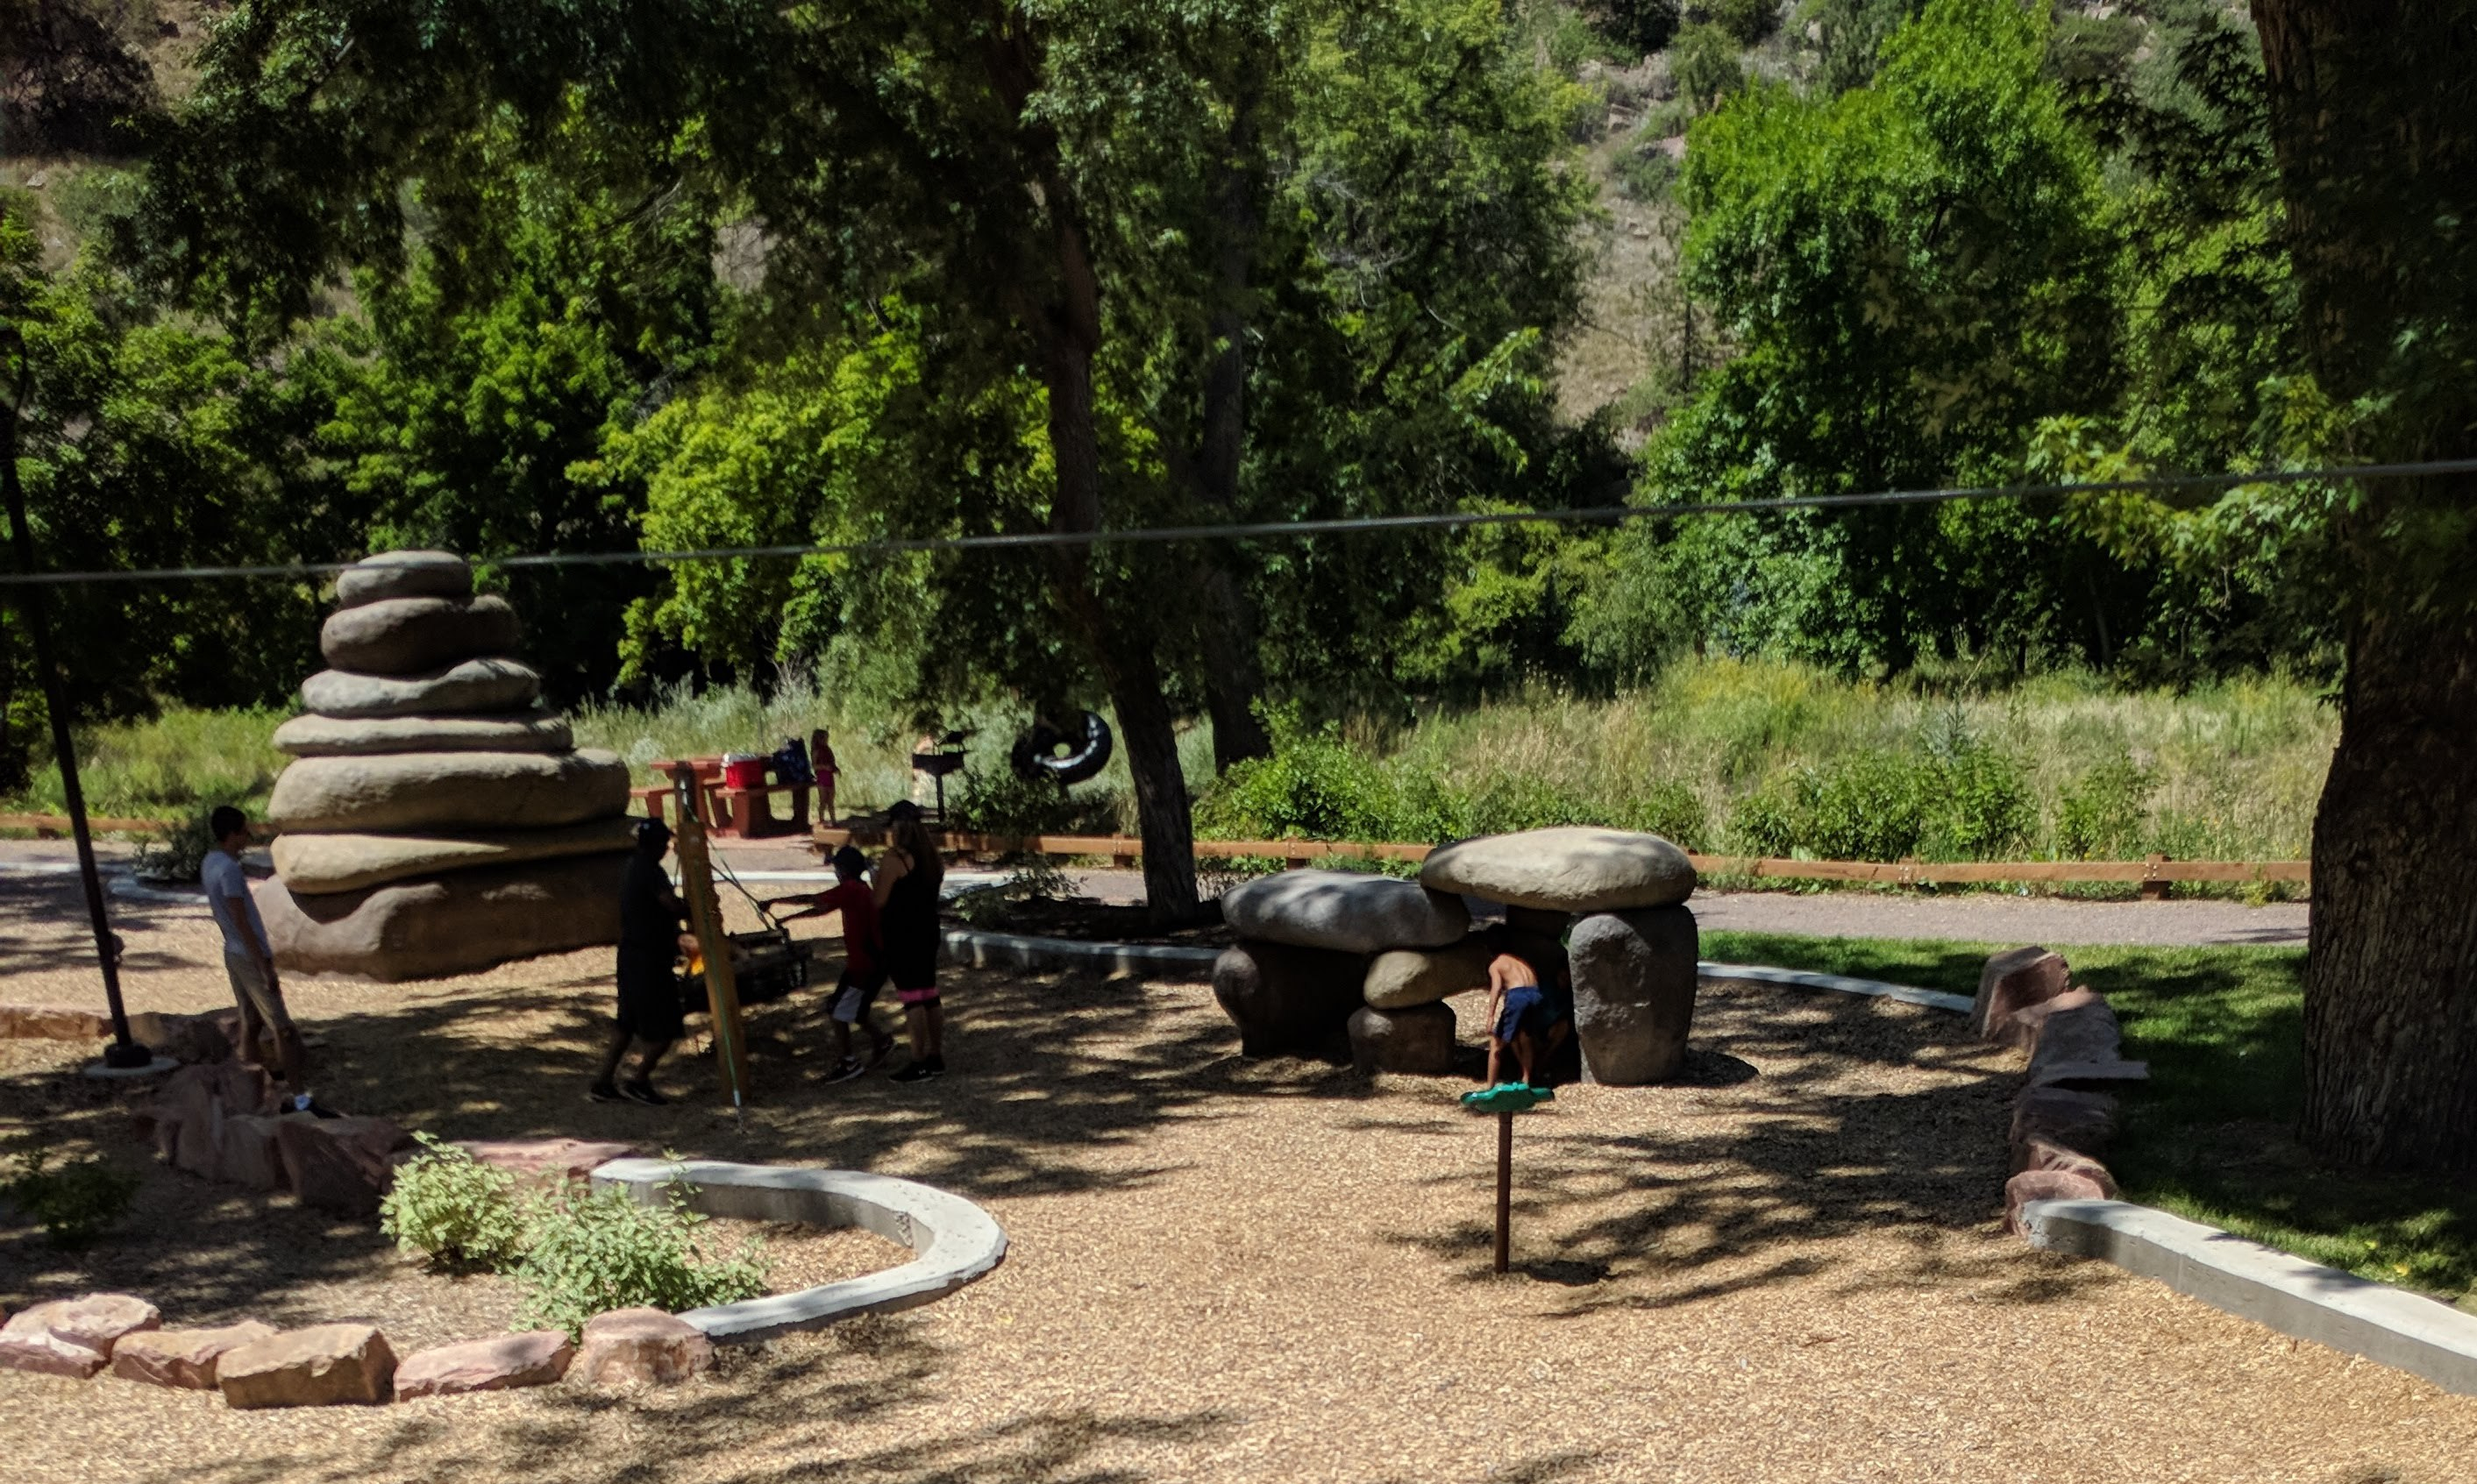 Rocky Play Structures and Zipline